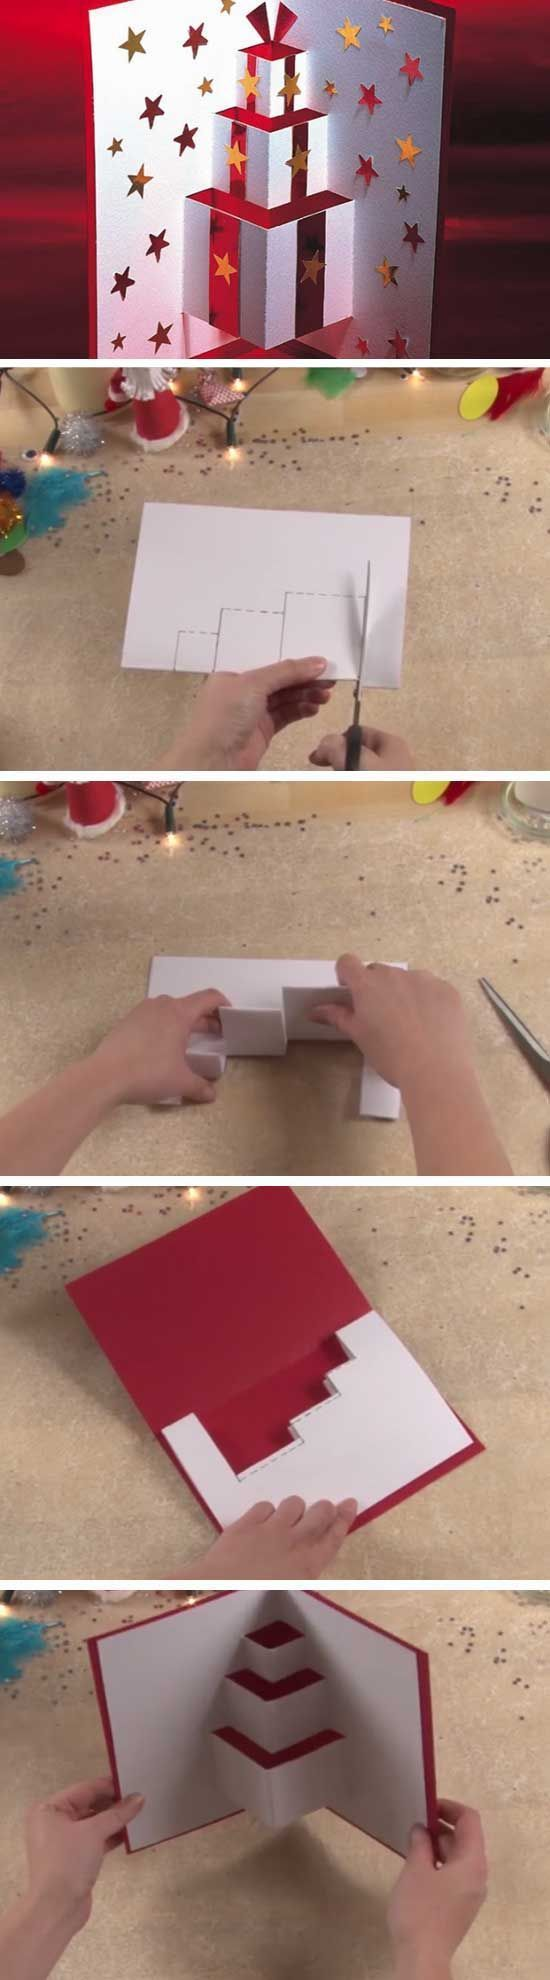 Easy DIY Christmas Card Ideas You'll Want to Send This Season